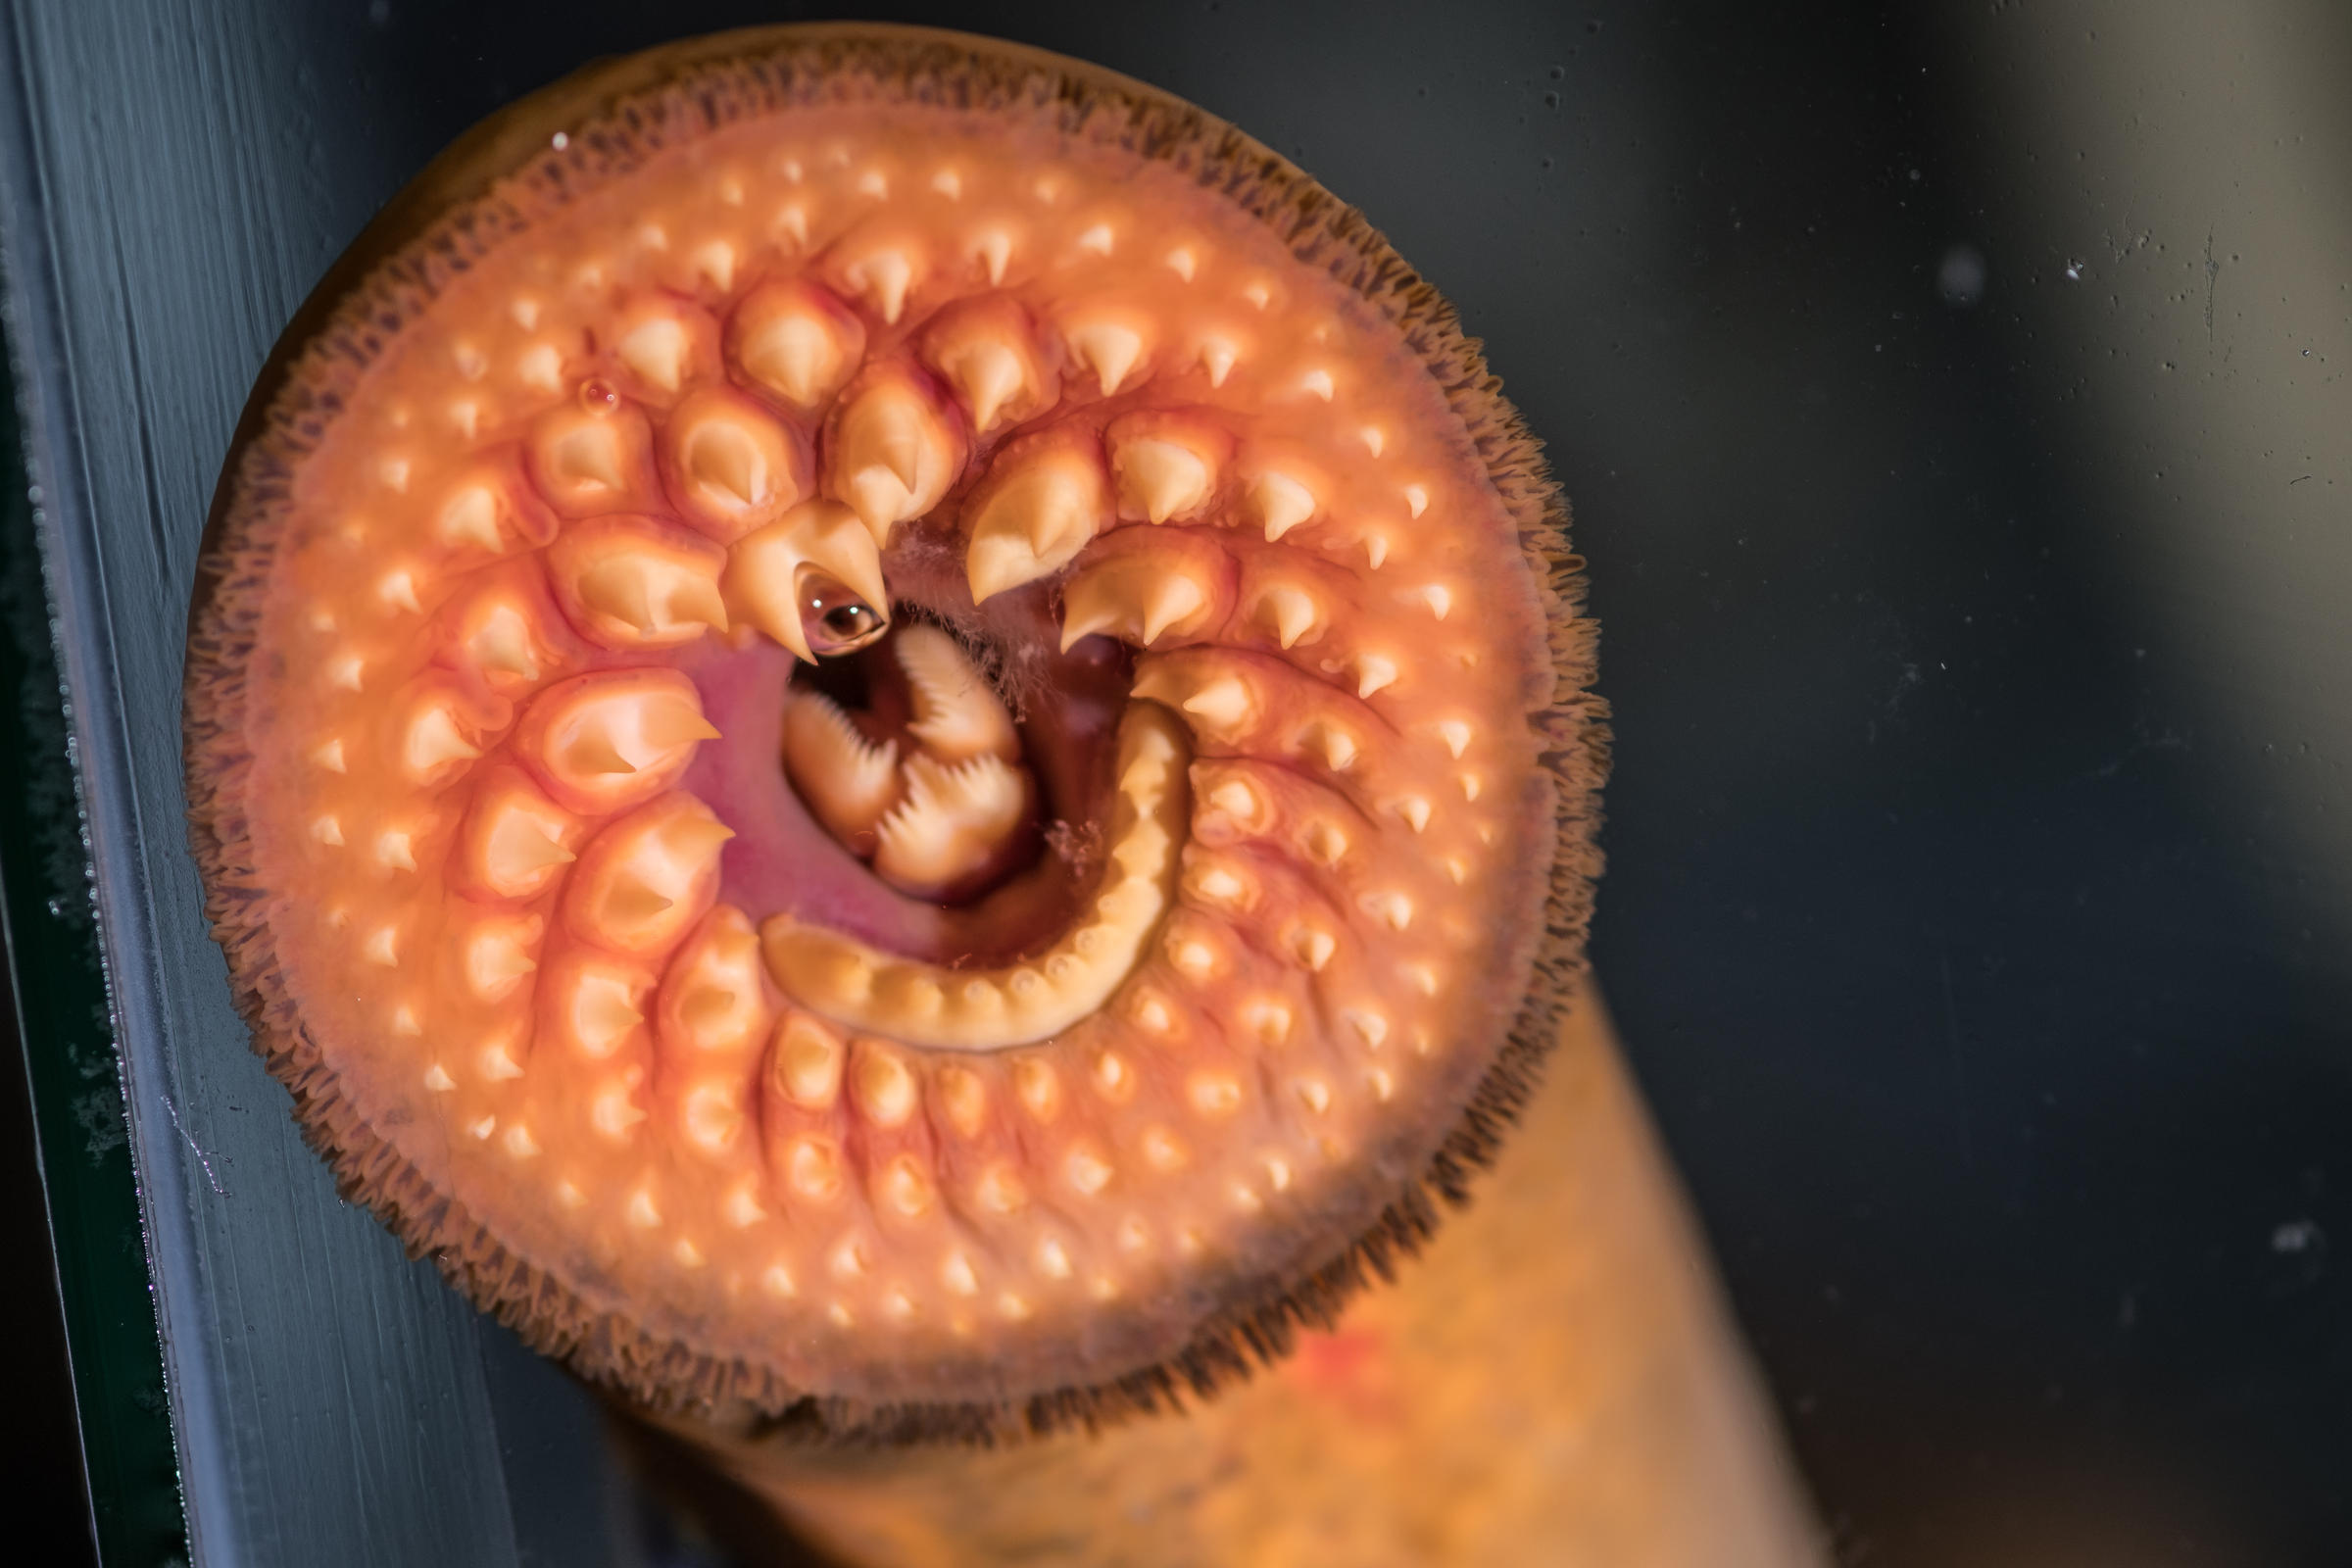 lamprey eel like fish